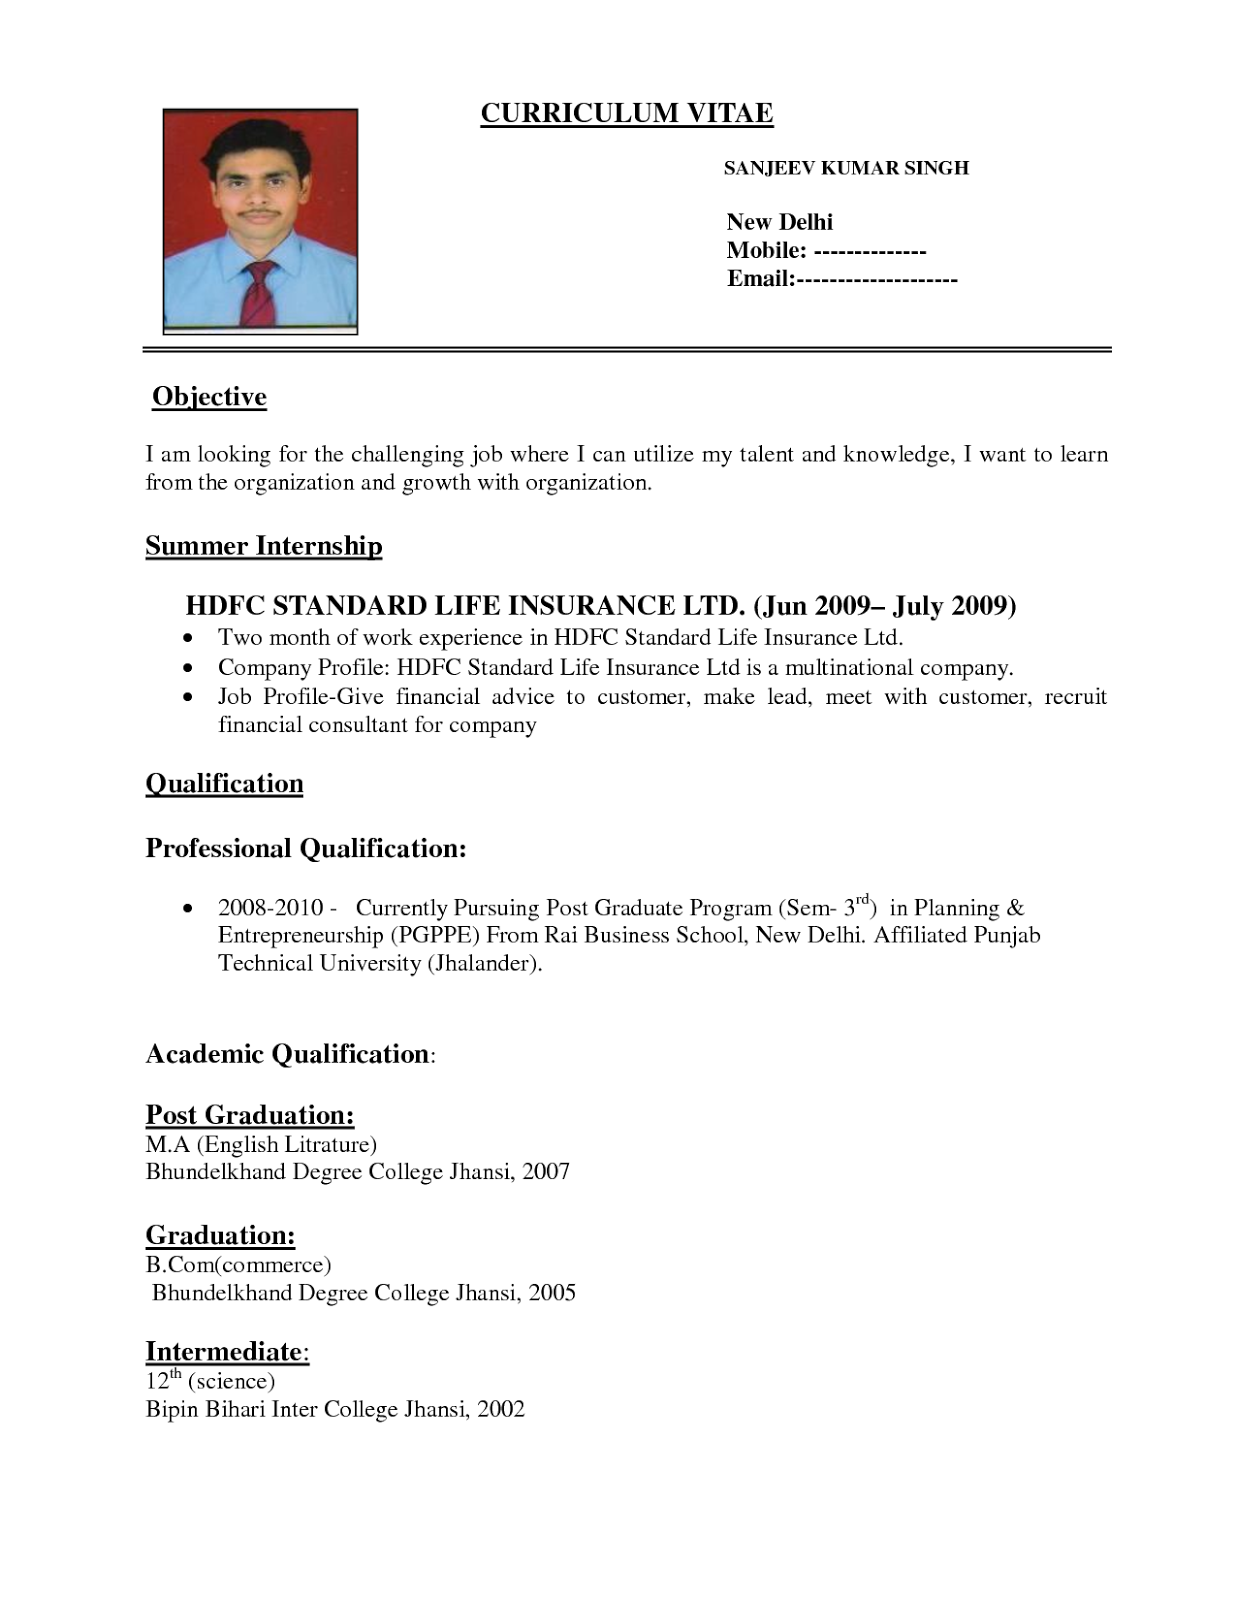 Pattern Of Resume Format | Fitness | Job resume format ...